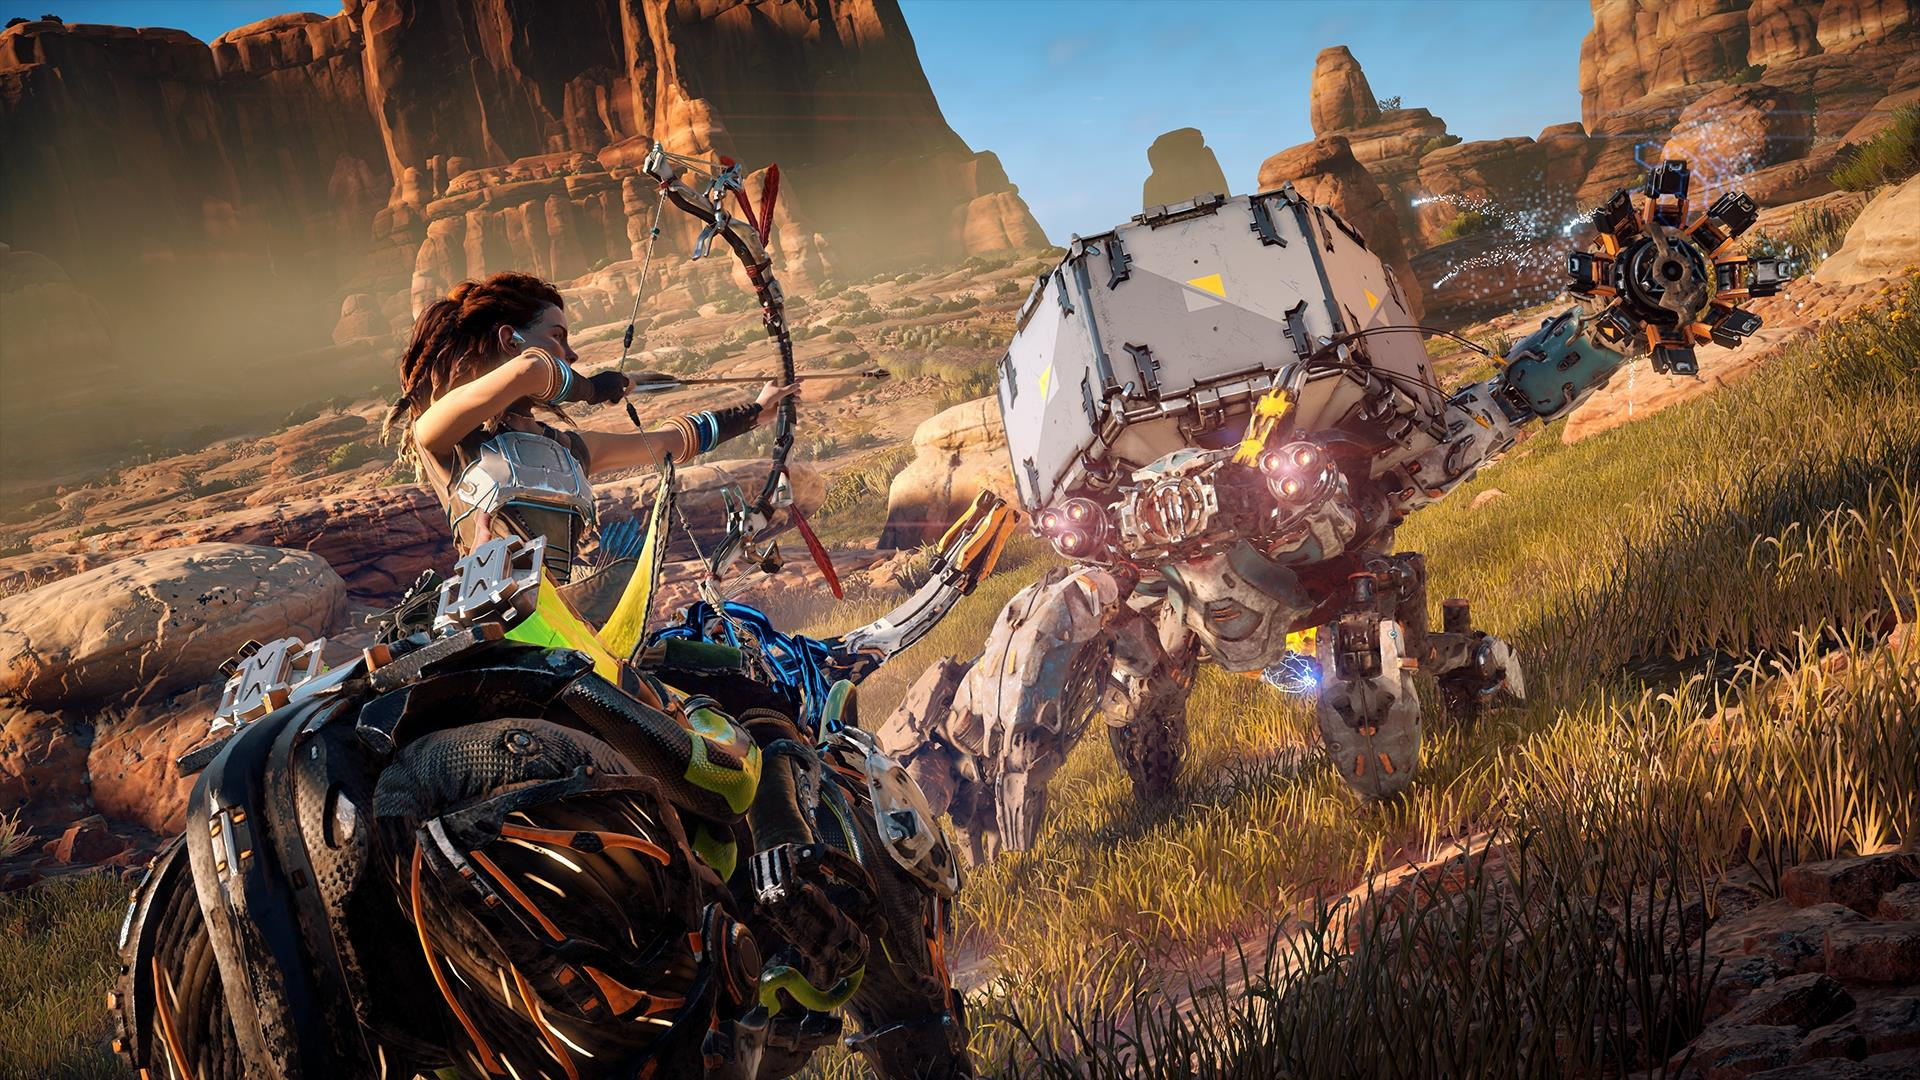 Horizon Zero Dawn is reportedly being ported to PC this year